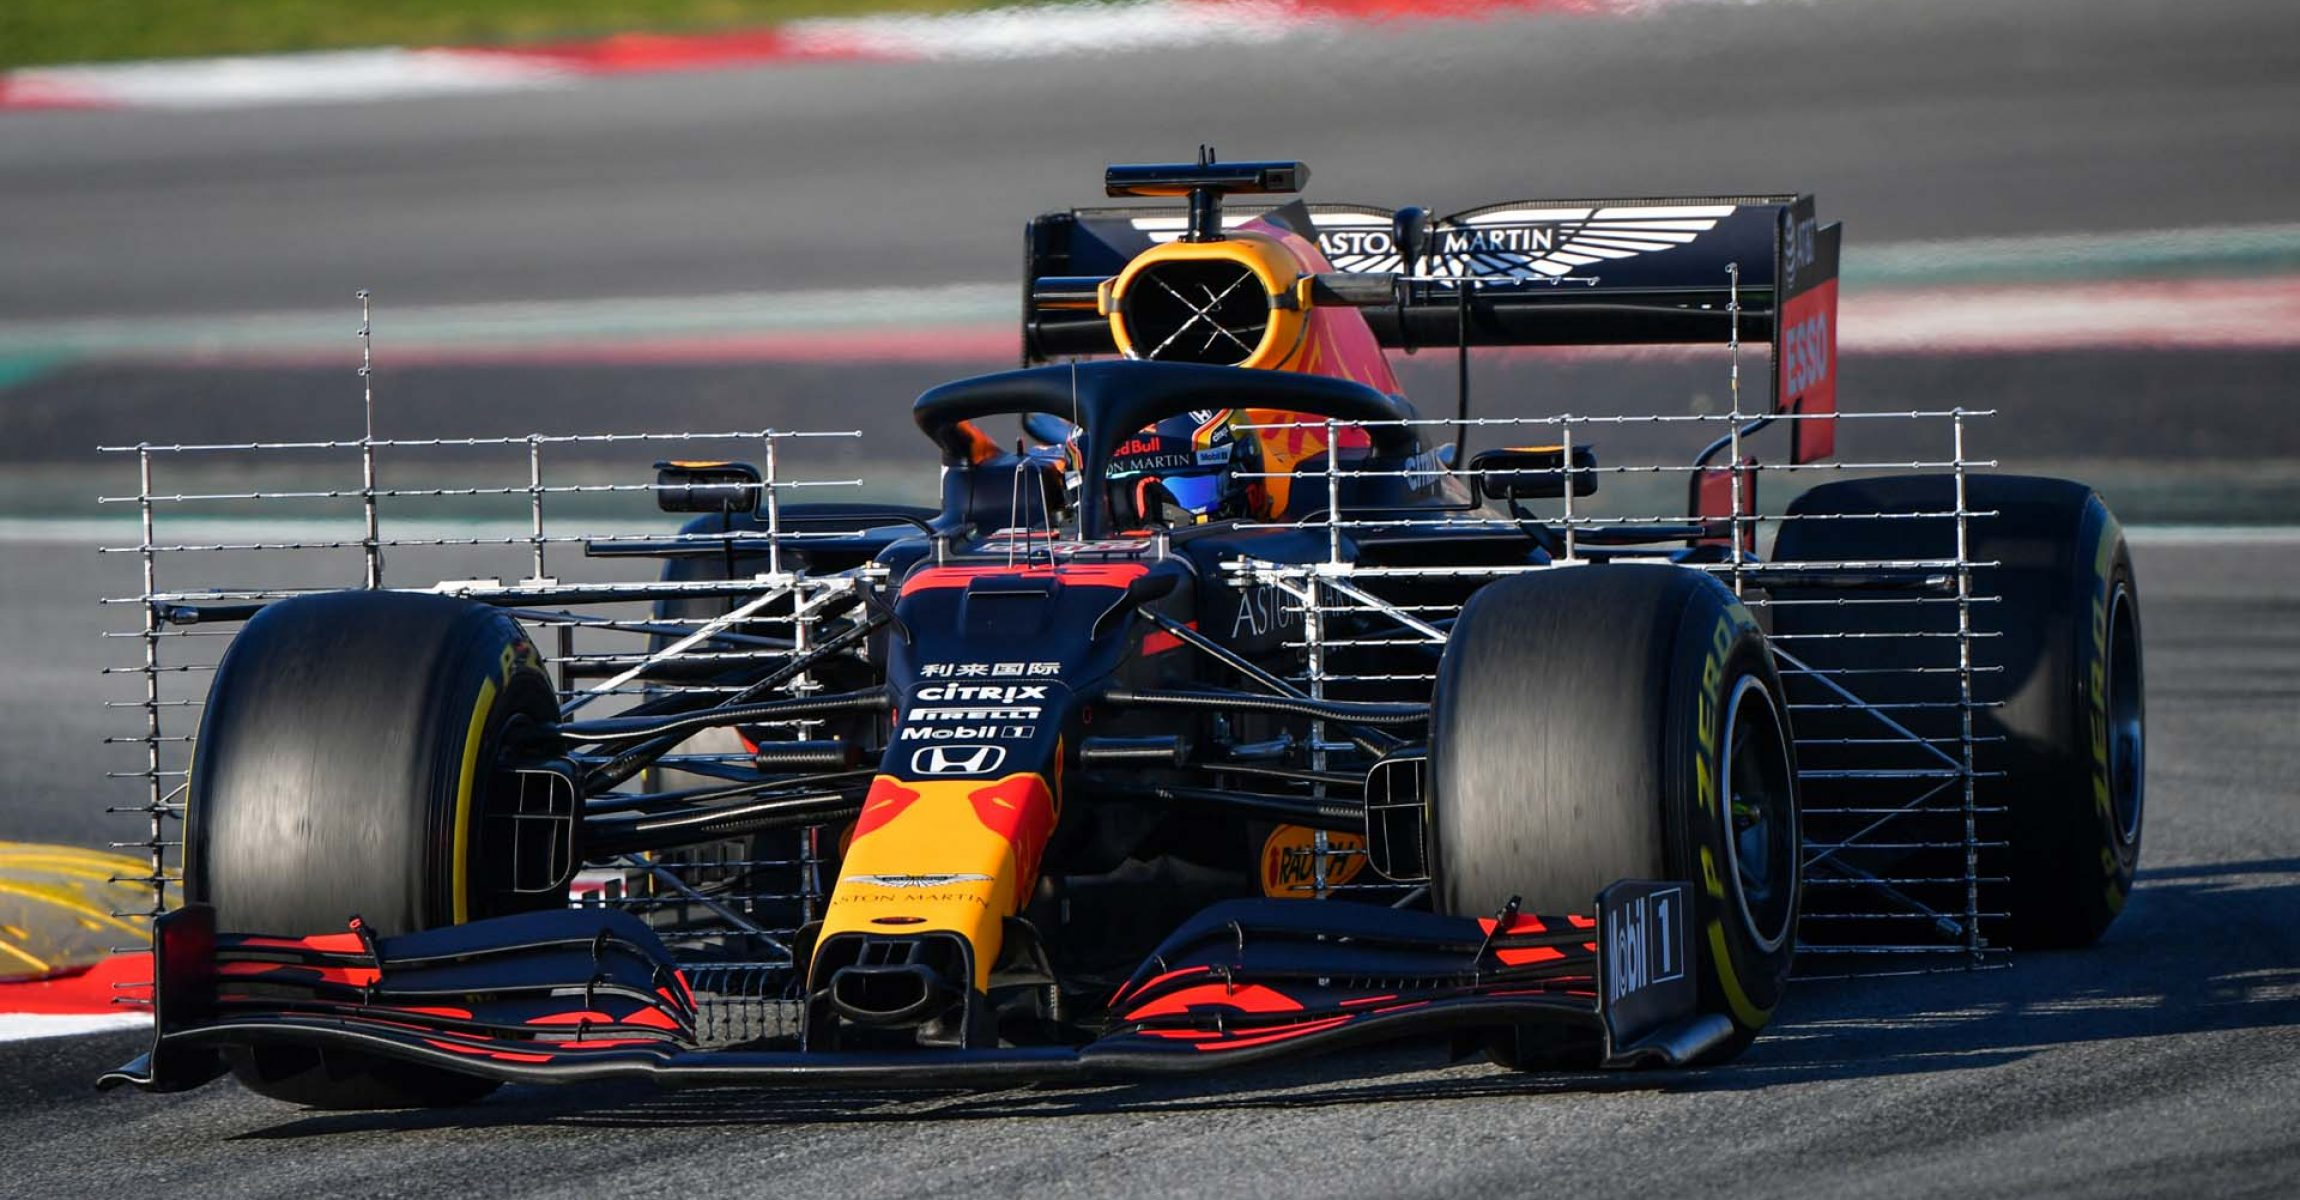 CIRCUIT DE BARCELONA-CATALUNYA, SPAIN - FEBRUARY 20: Max Verstappen, Red Bull Racing during the Barcelona February testing I at Circuit de Barcelona-Catalunya on February 20, 2020 in Circuit de Barcelona-Catalunya, Spain. (Photo by Mark Sutton / LAT Images)